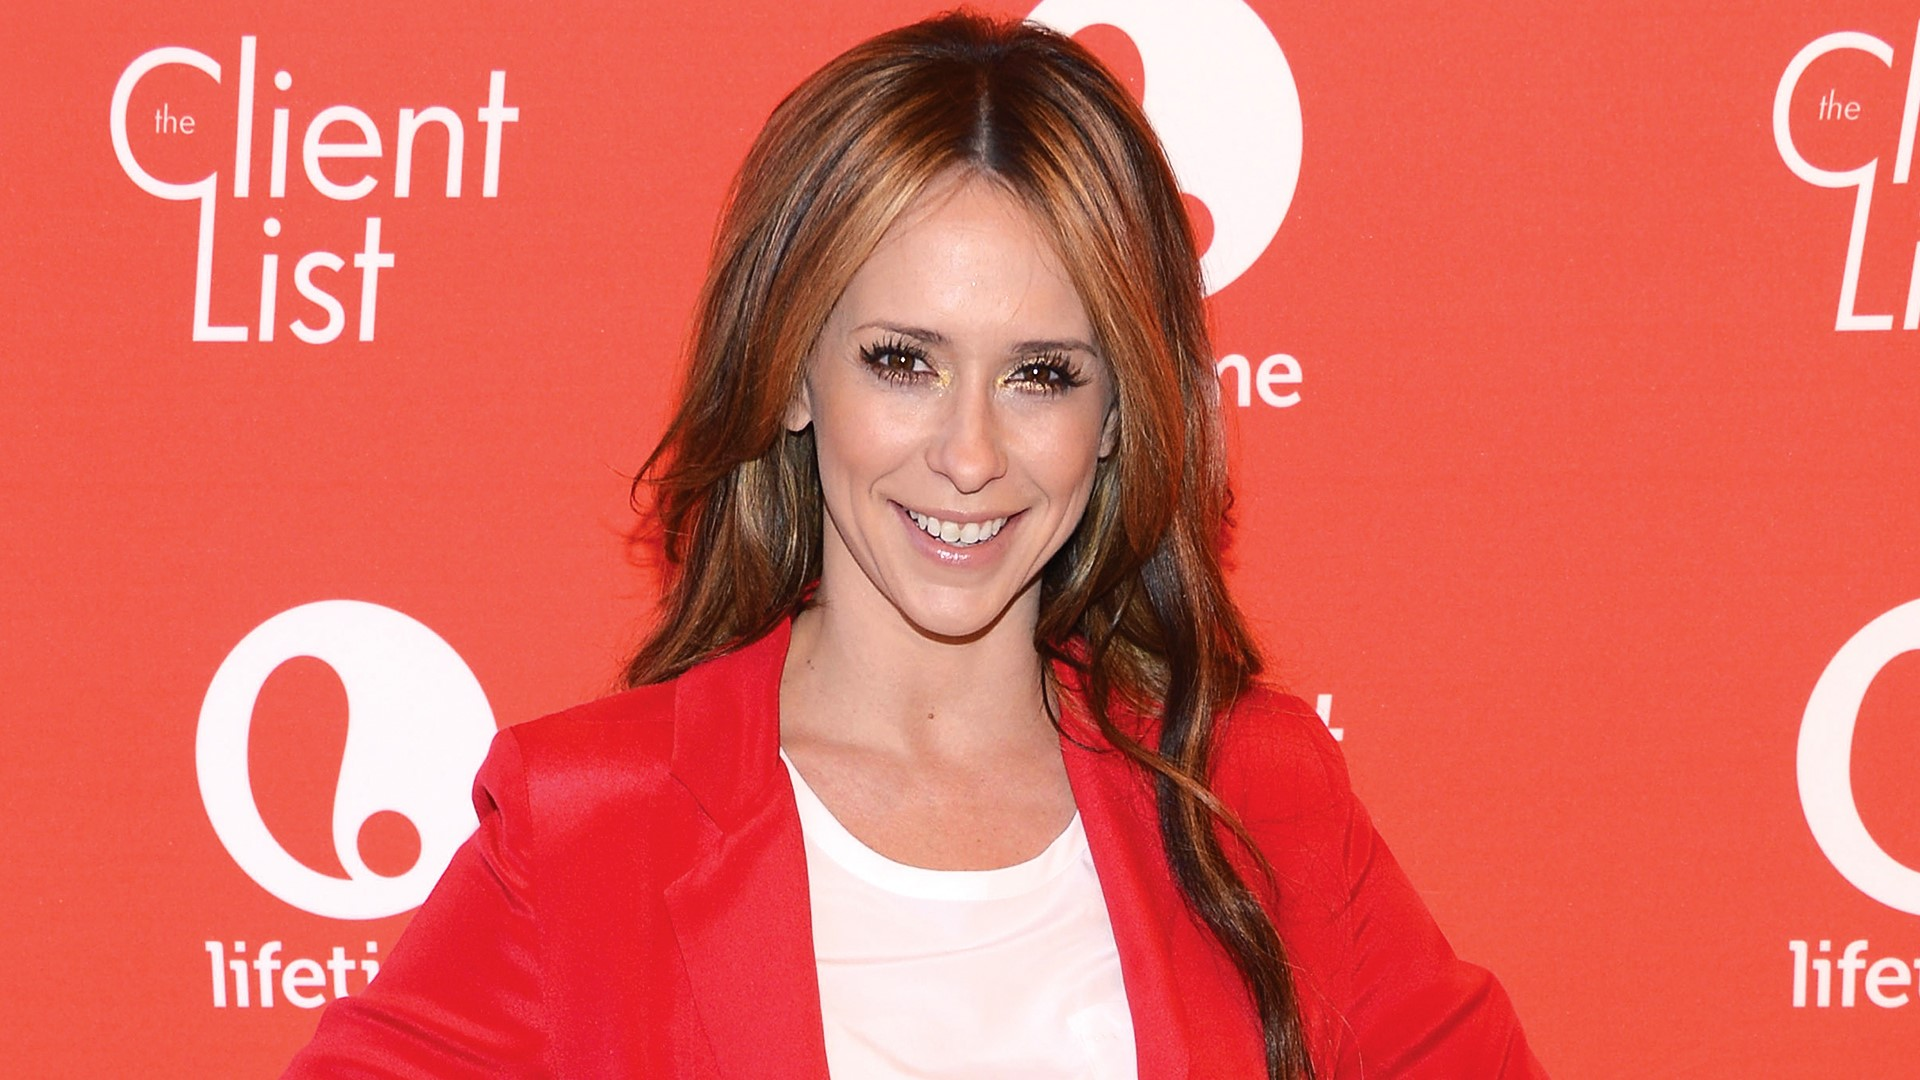 Jennifer Love Hewitt Background image